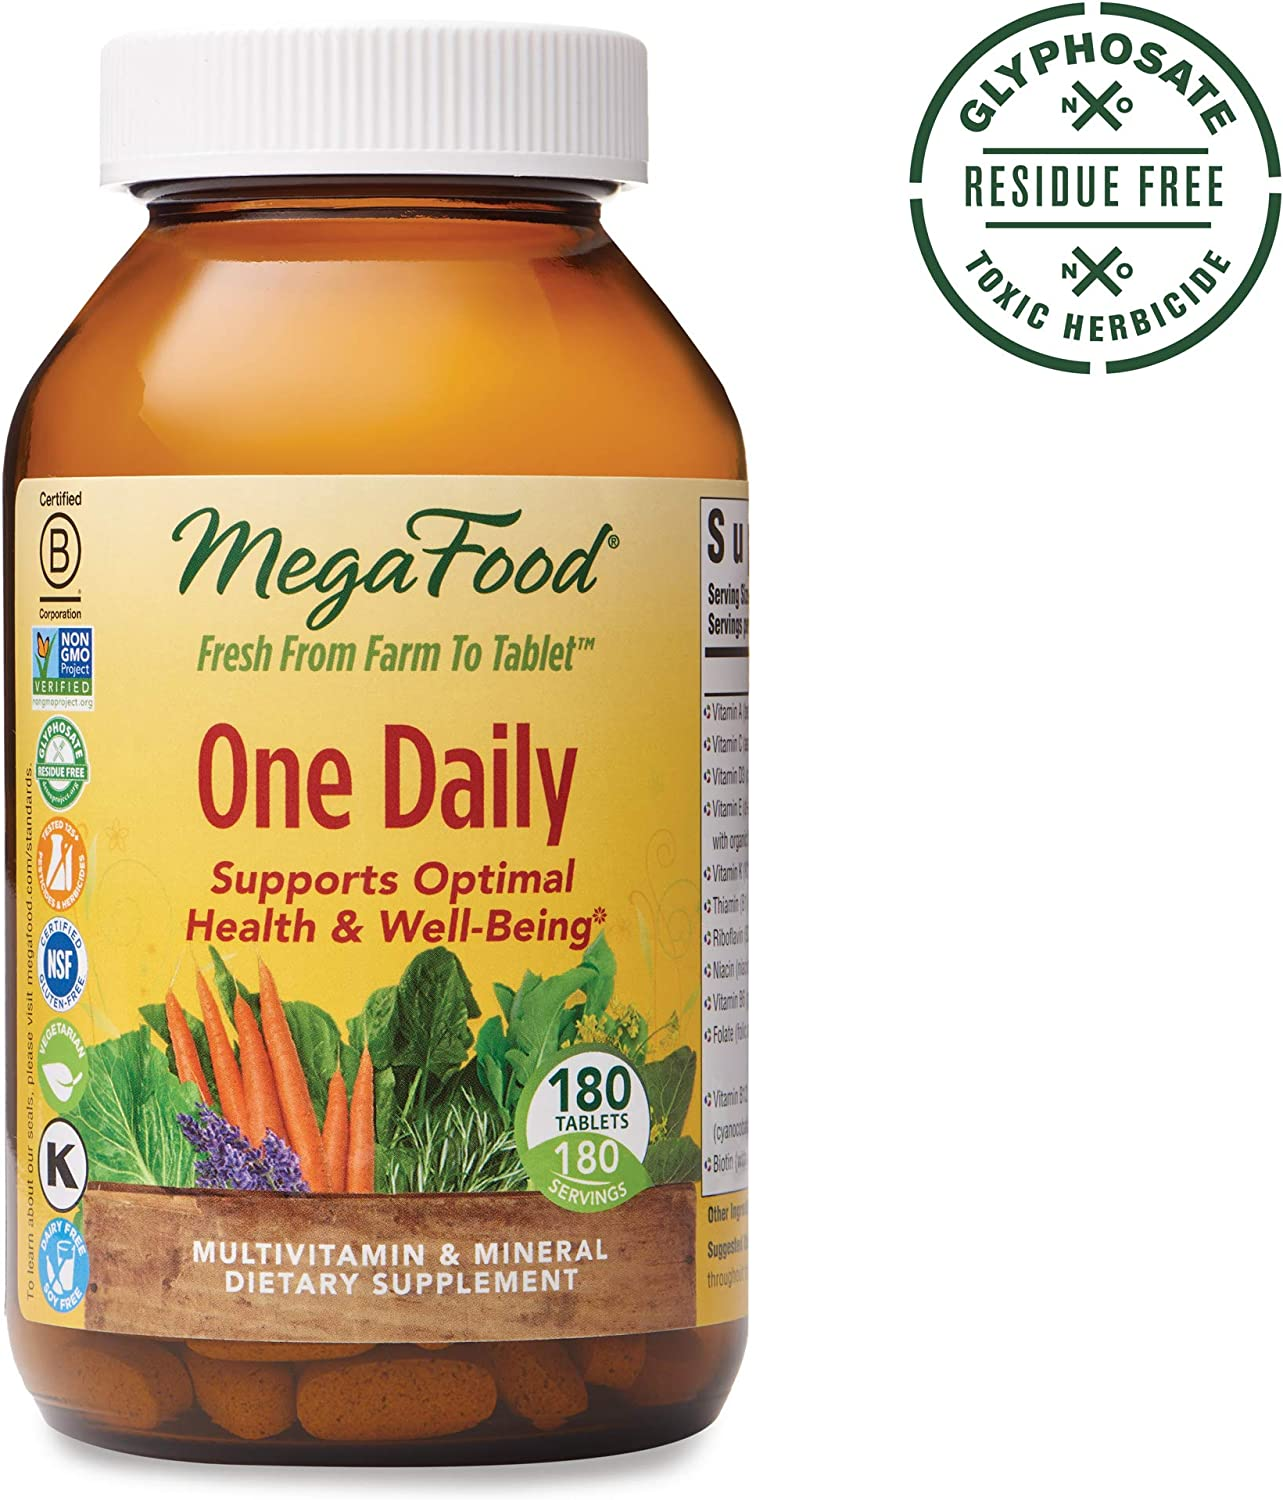 MegaFood, One Daily, Supports Optimal Health and Wellbeing, Multivitamin and Mineral Supplement, Gluten Free, Vegetarian, 180 Tablets 180 Servings FFP